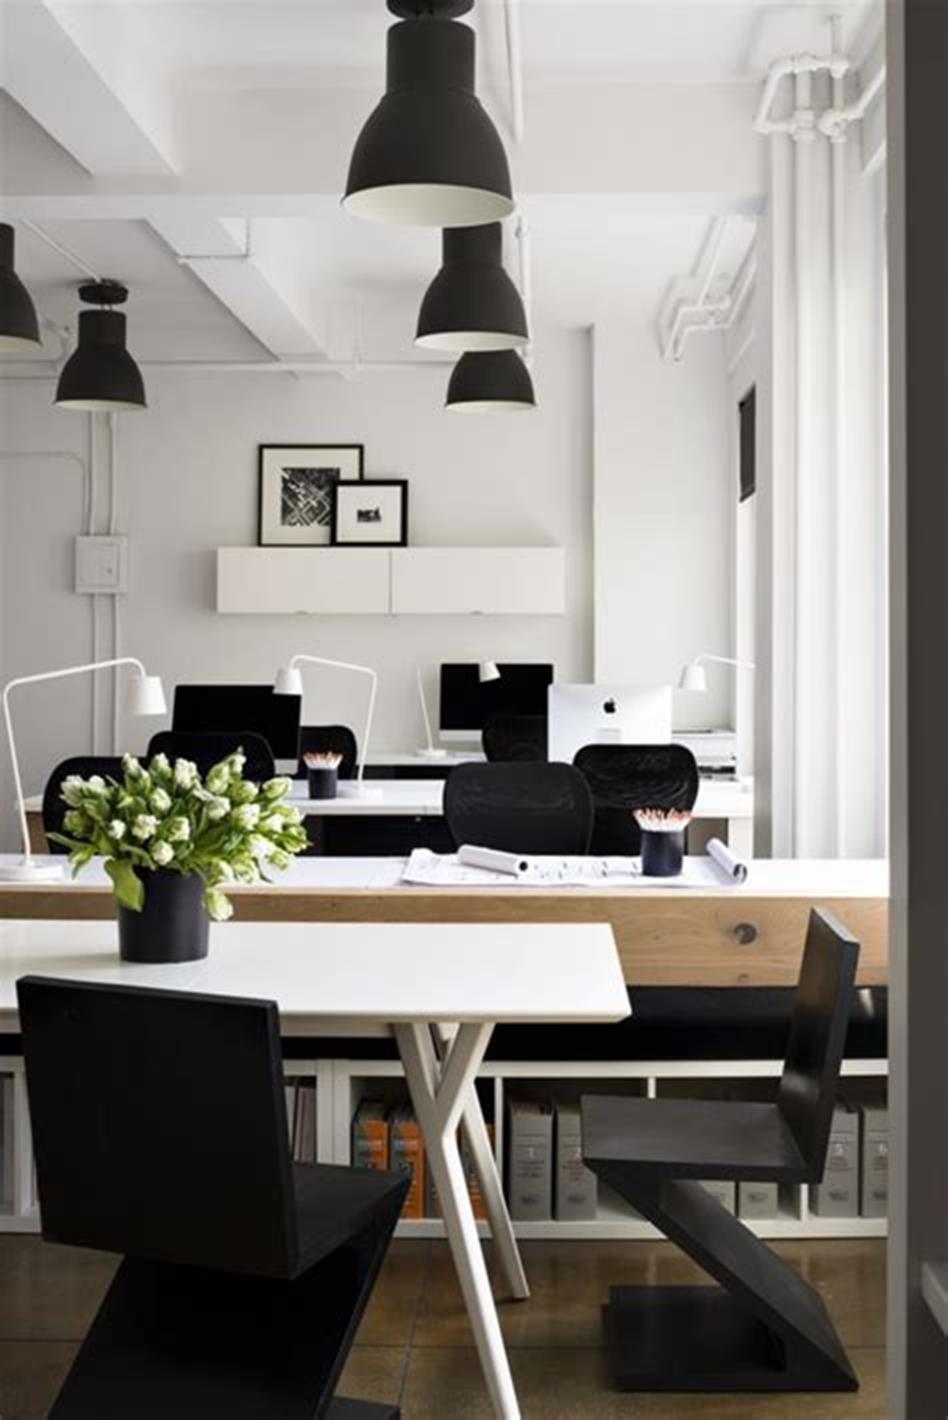 50 Best Small Space Office Decorating Ideas On a Budget 2019 41